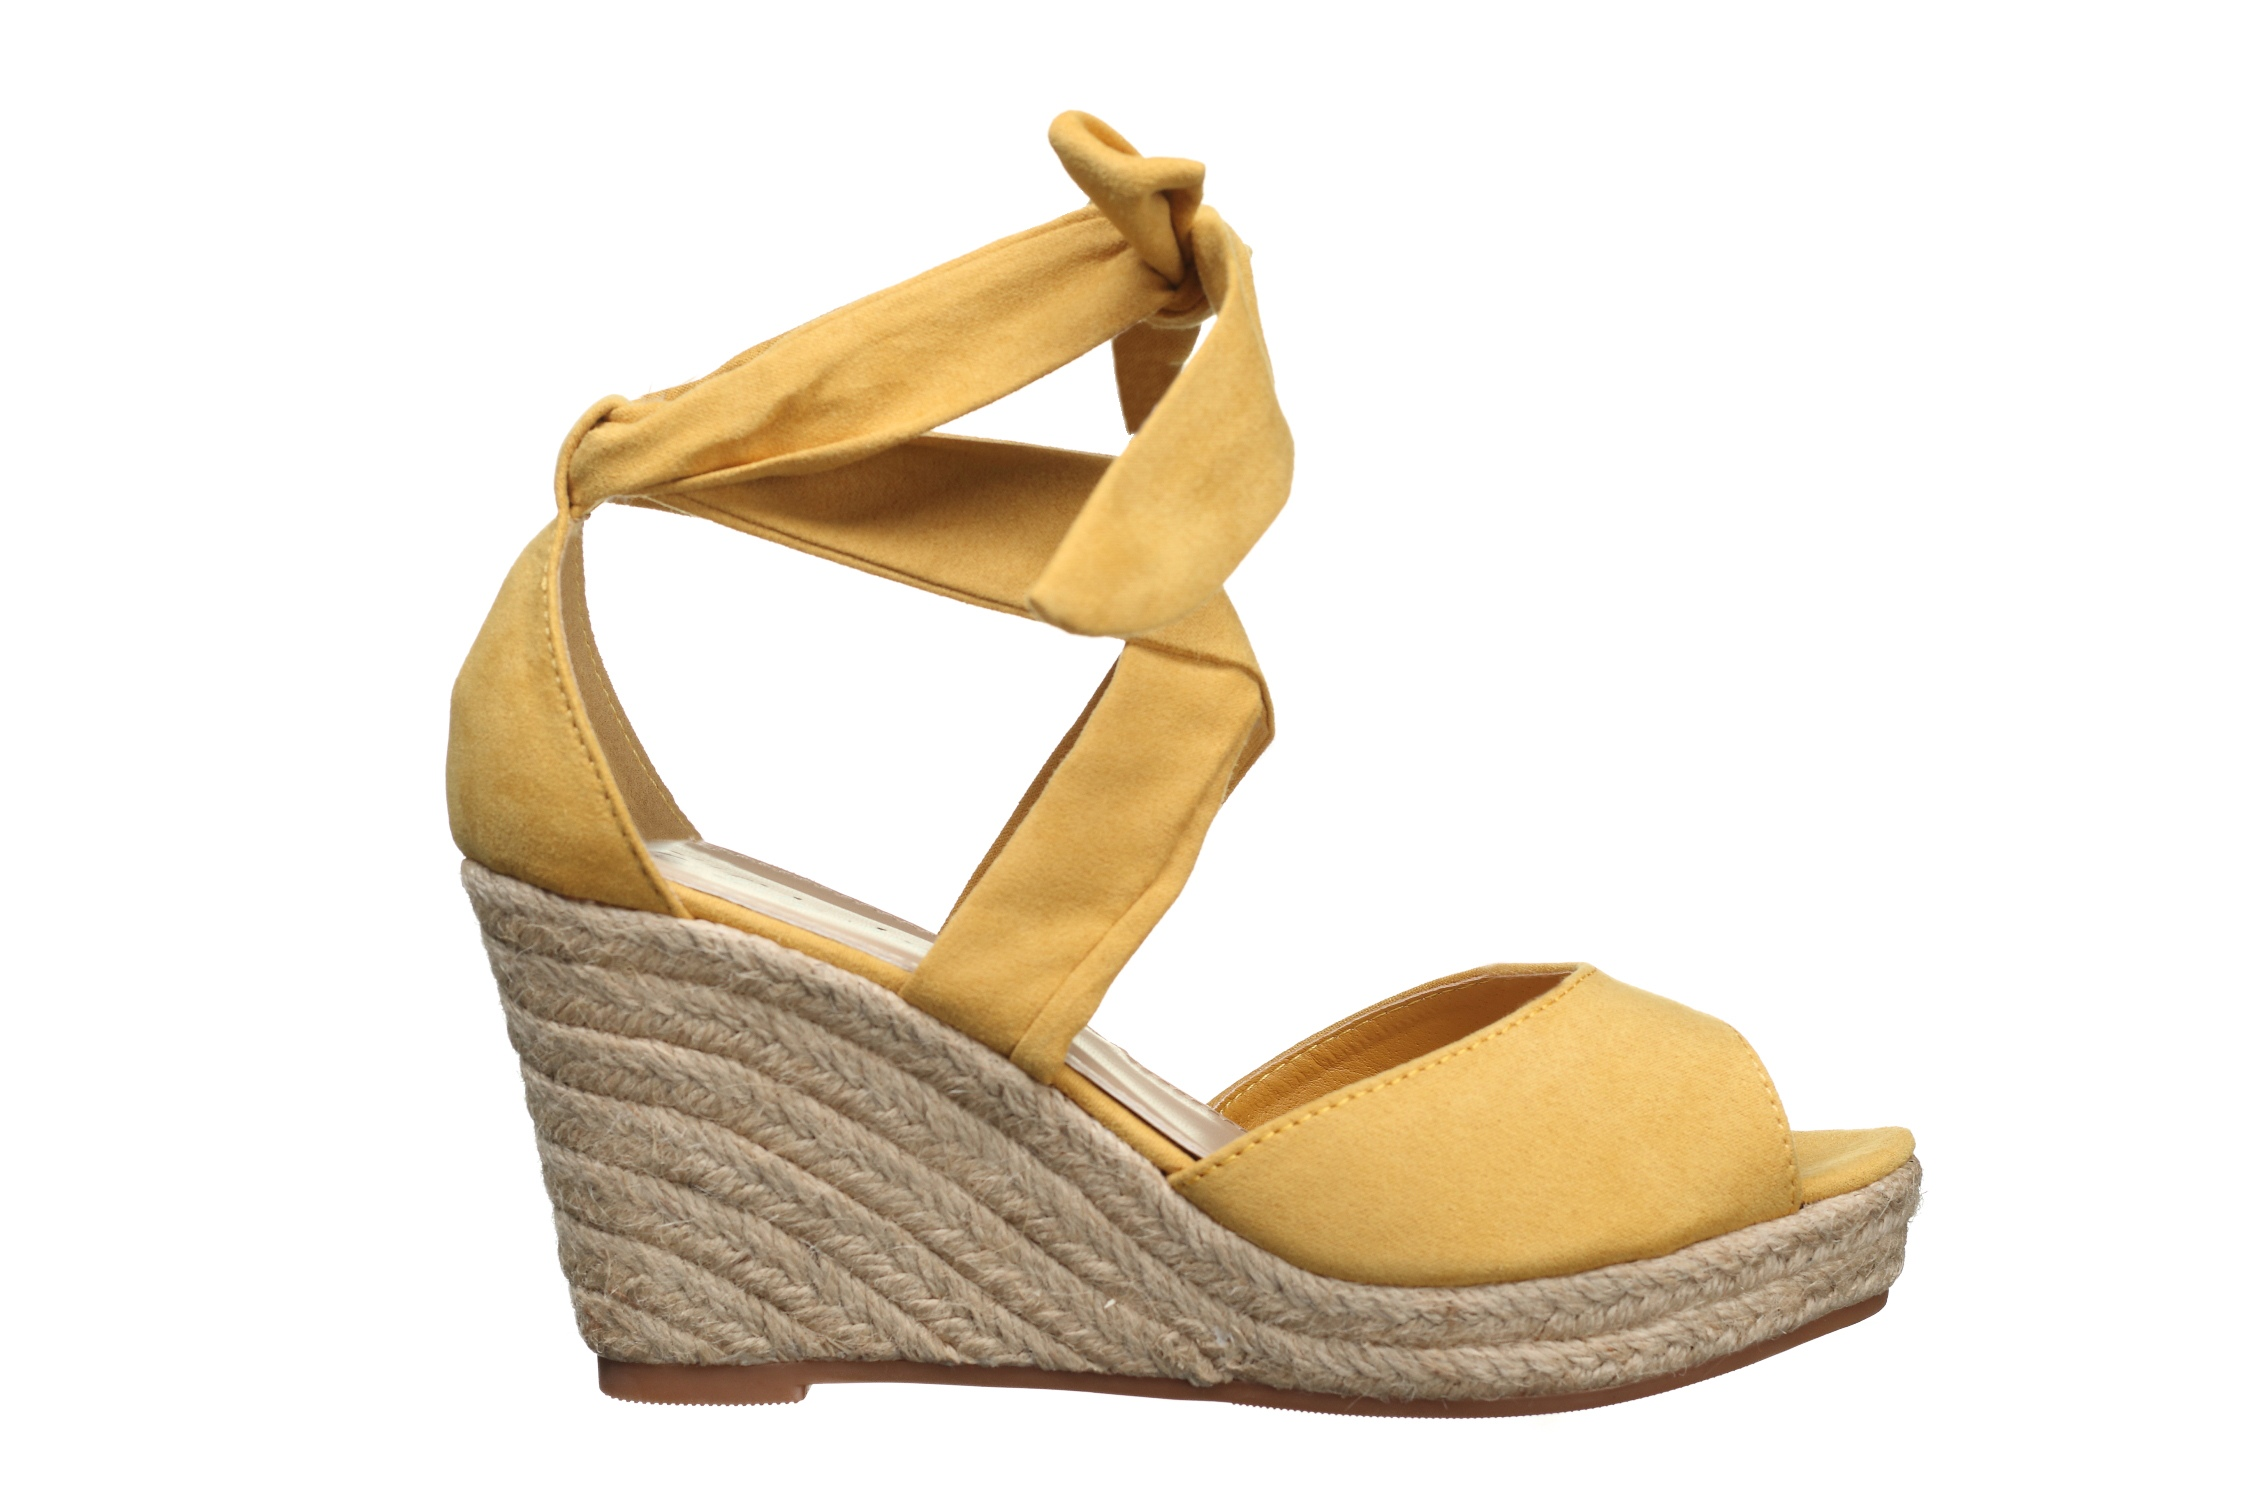 https://www.leadermode.com/202356/lily-shoes-183-yellow.jpg